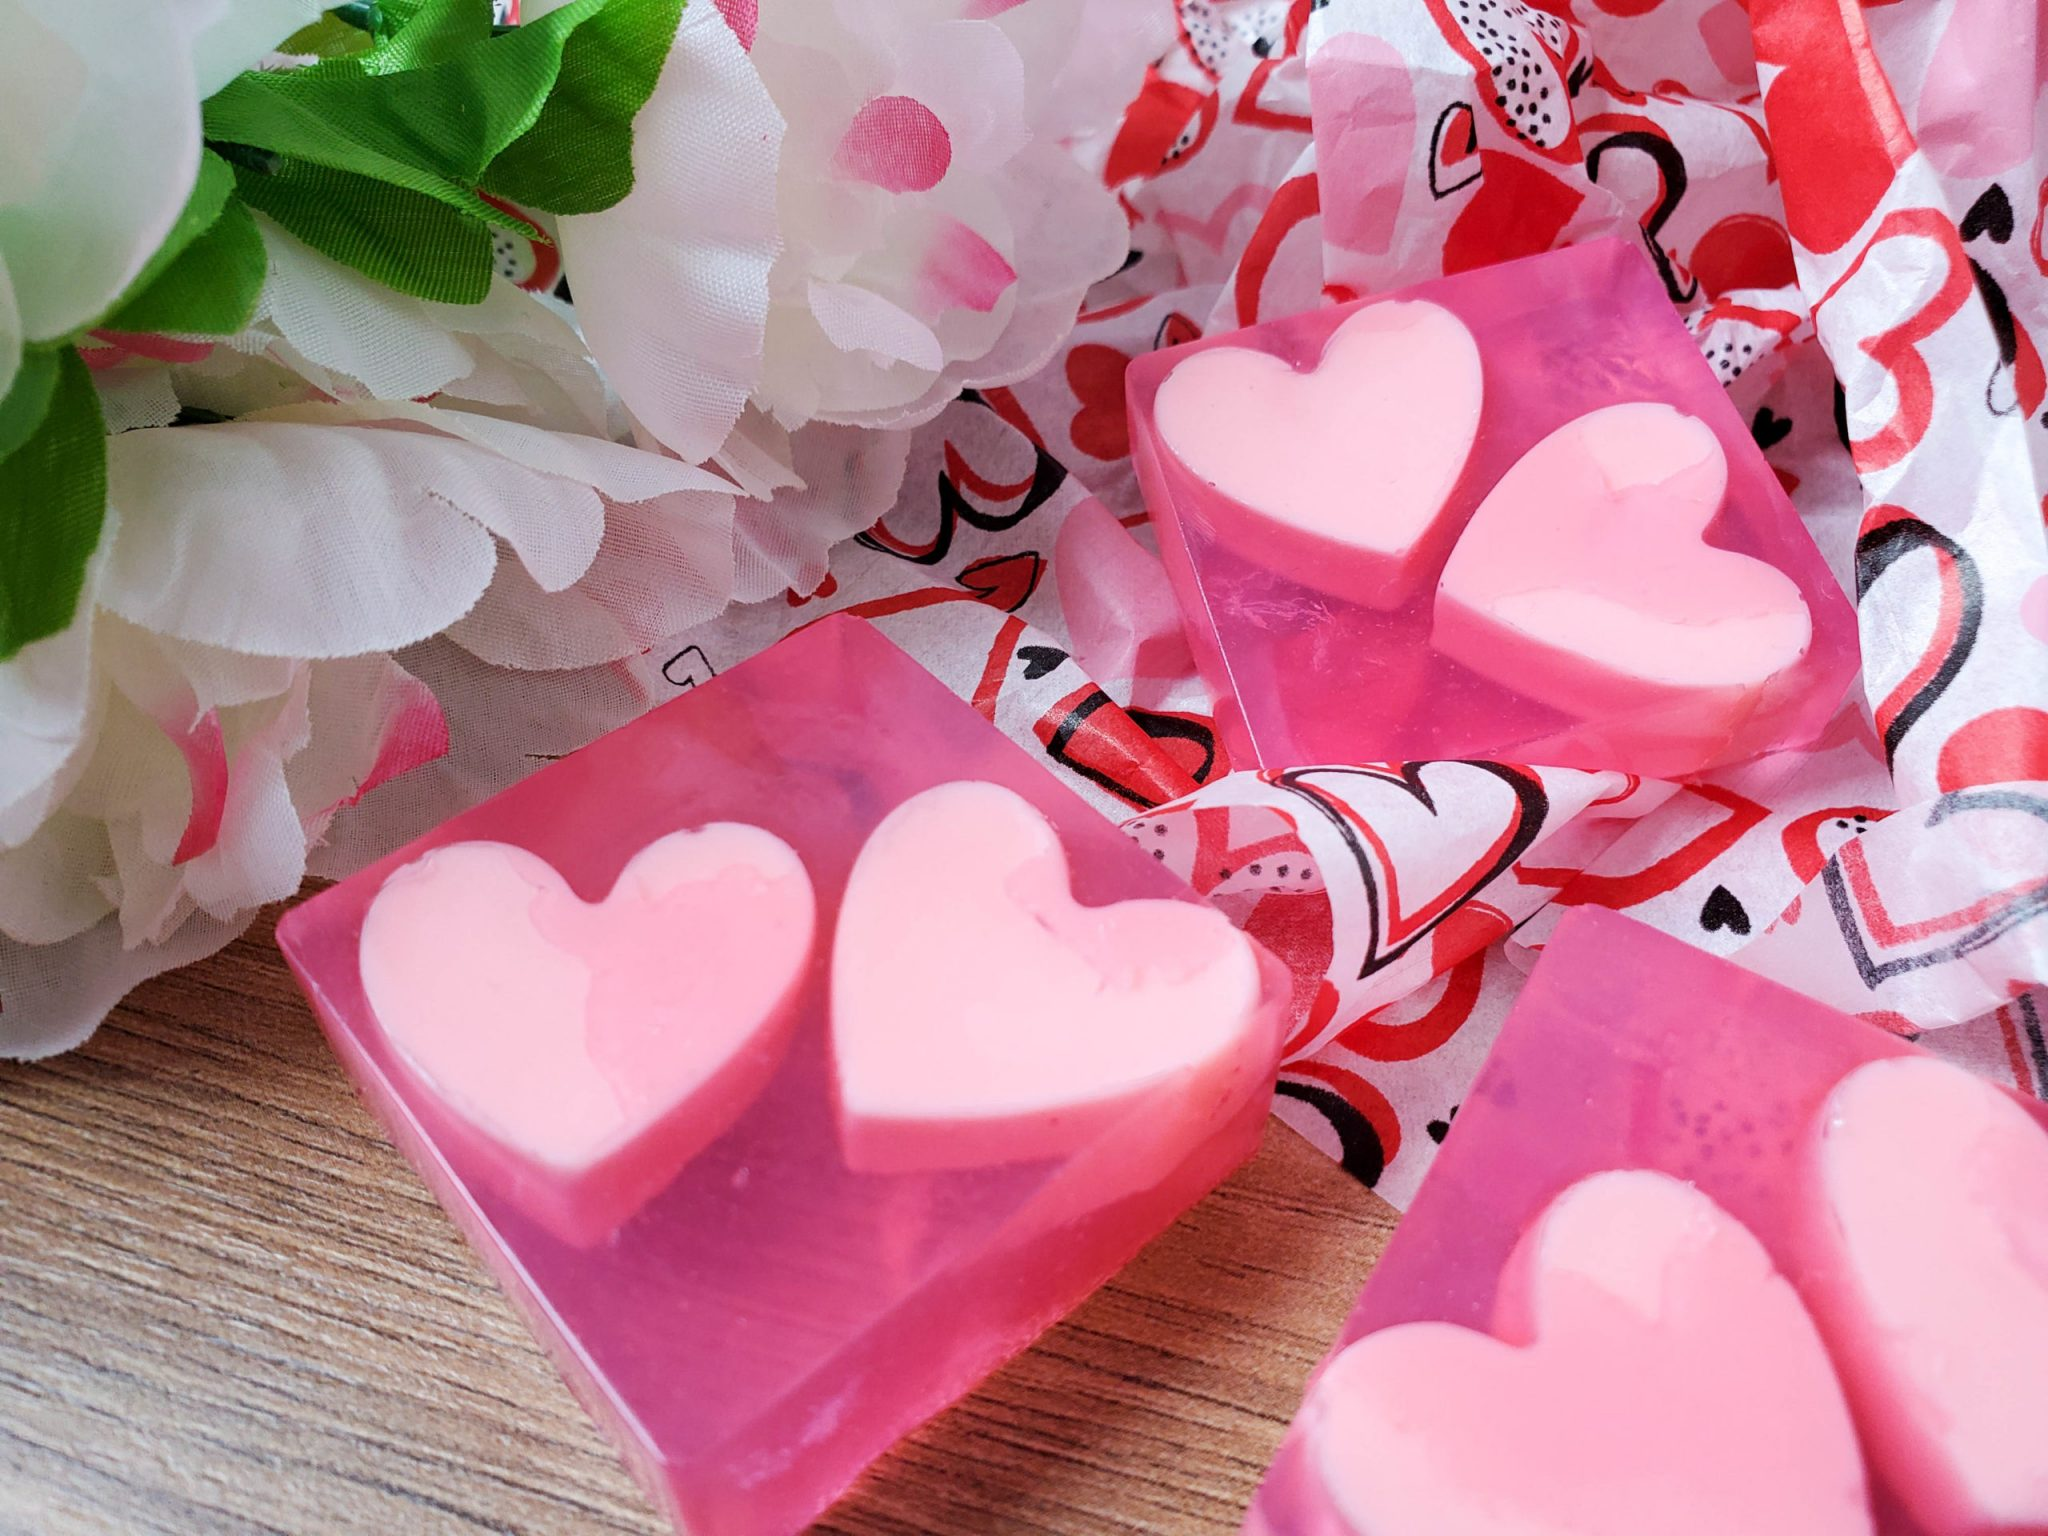 DIY Valentine's Day Gifts, Decor, And Treats!